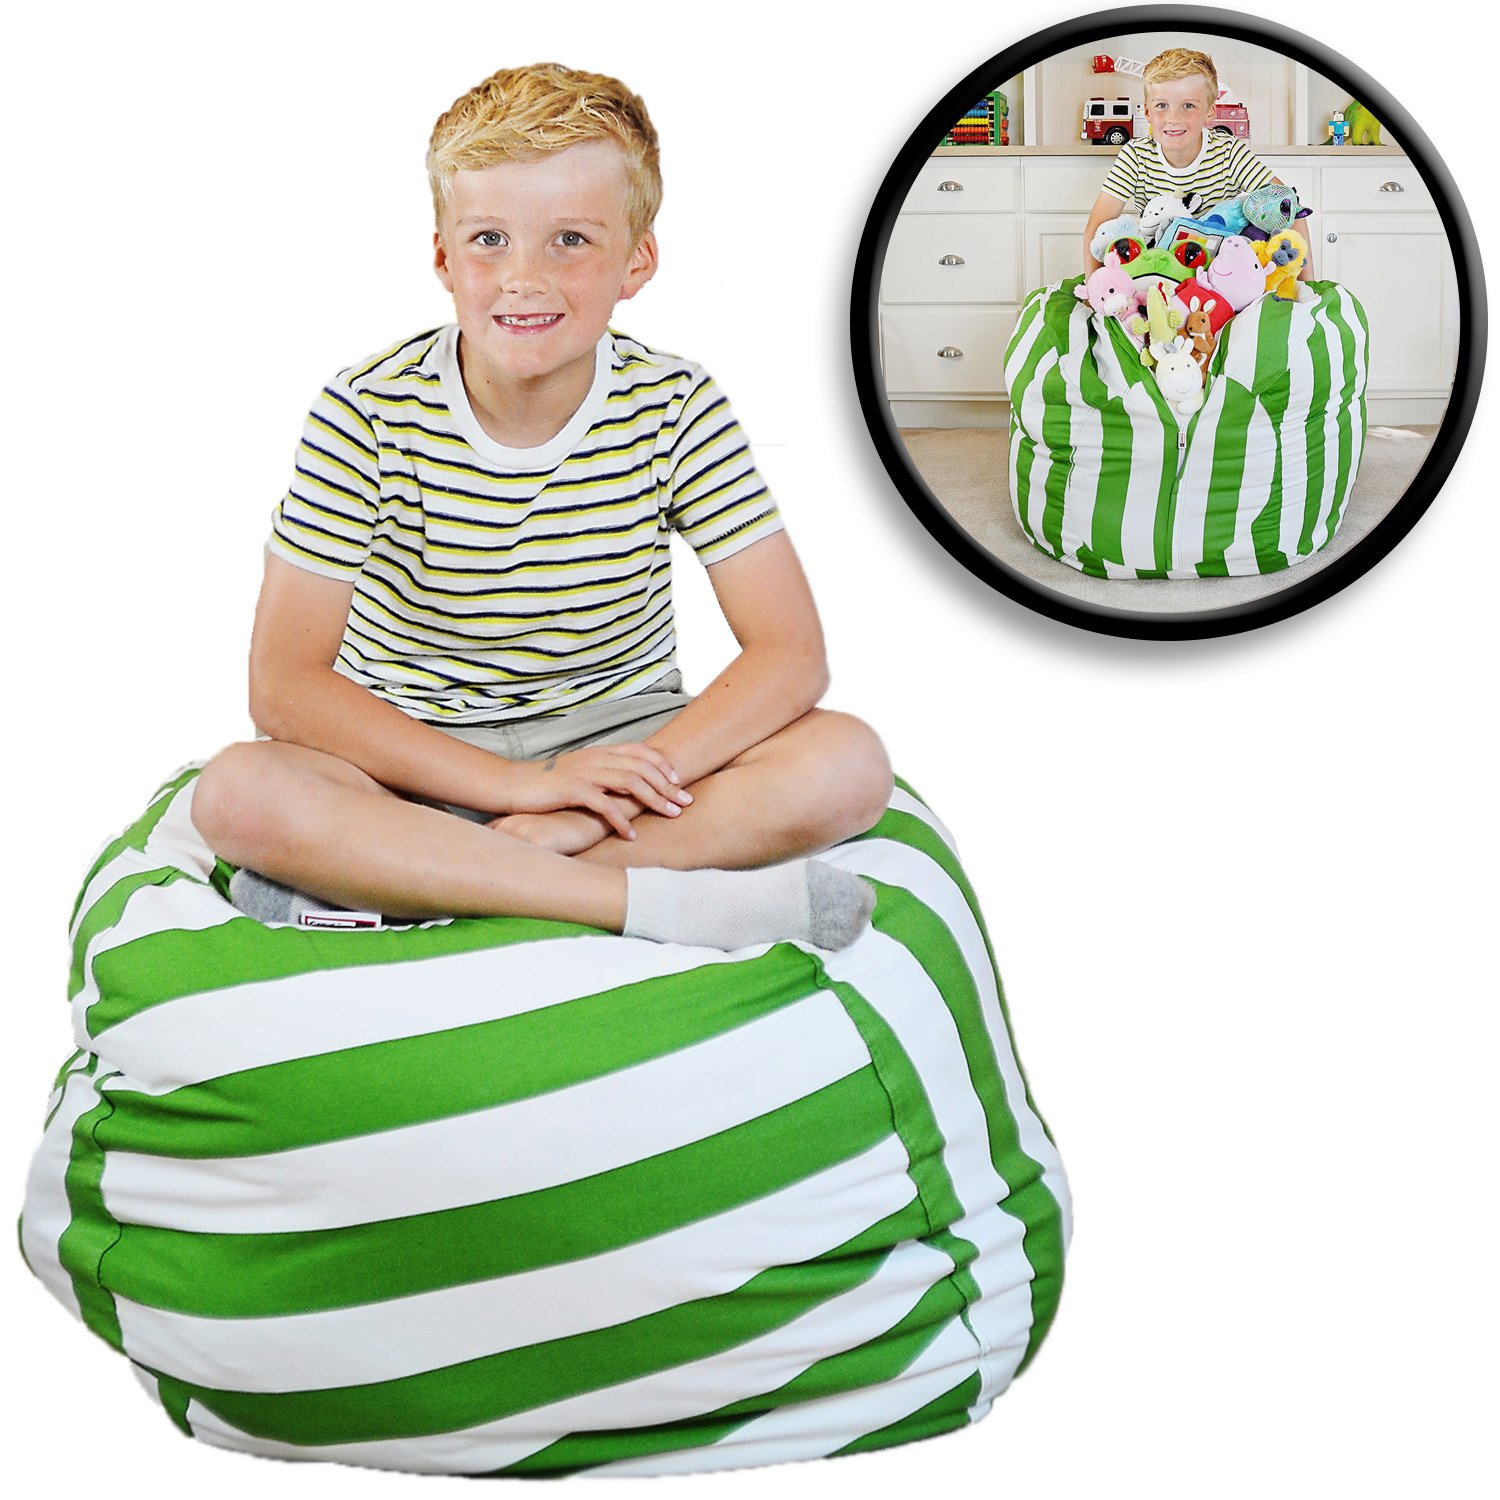 "Extra Large - Stuffed Animal Storage Bean Bag Chair - Premium Cotton Canvas - Clean Up The Room And Put Those Critters To Work For You! - By Creative Qt (38"", Green Stripe)"